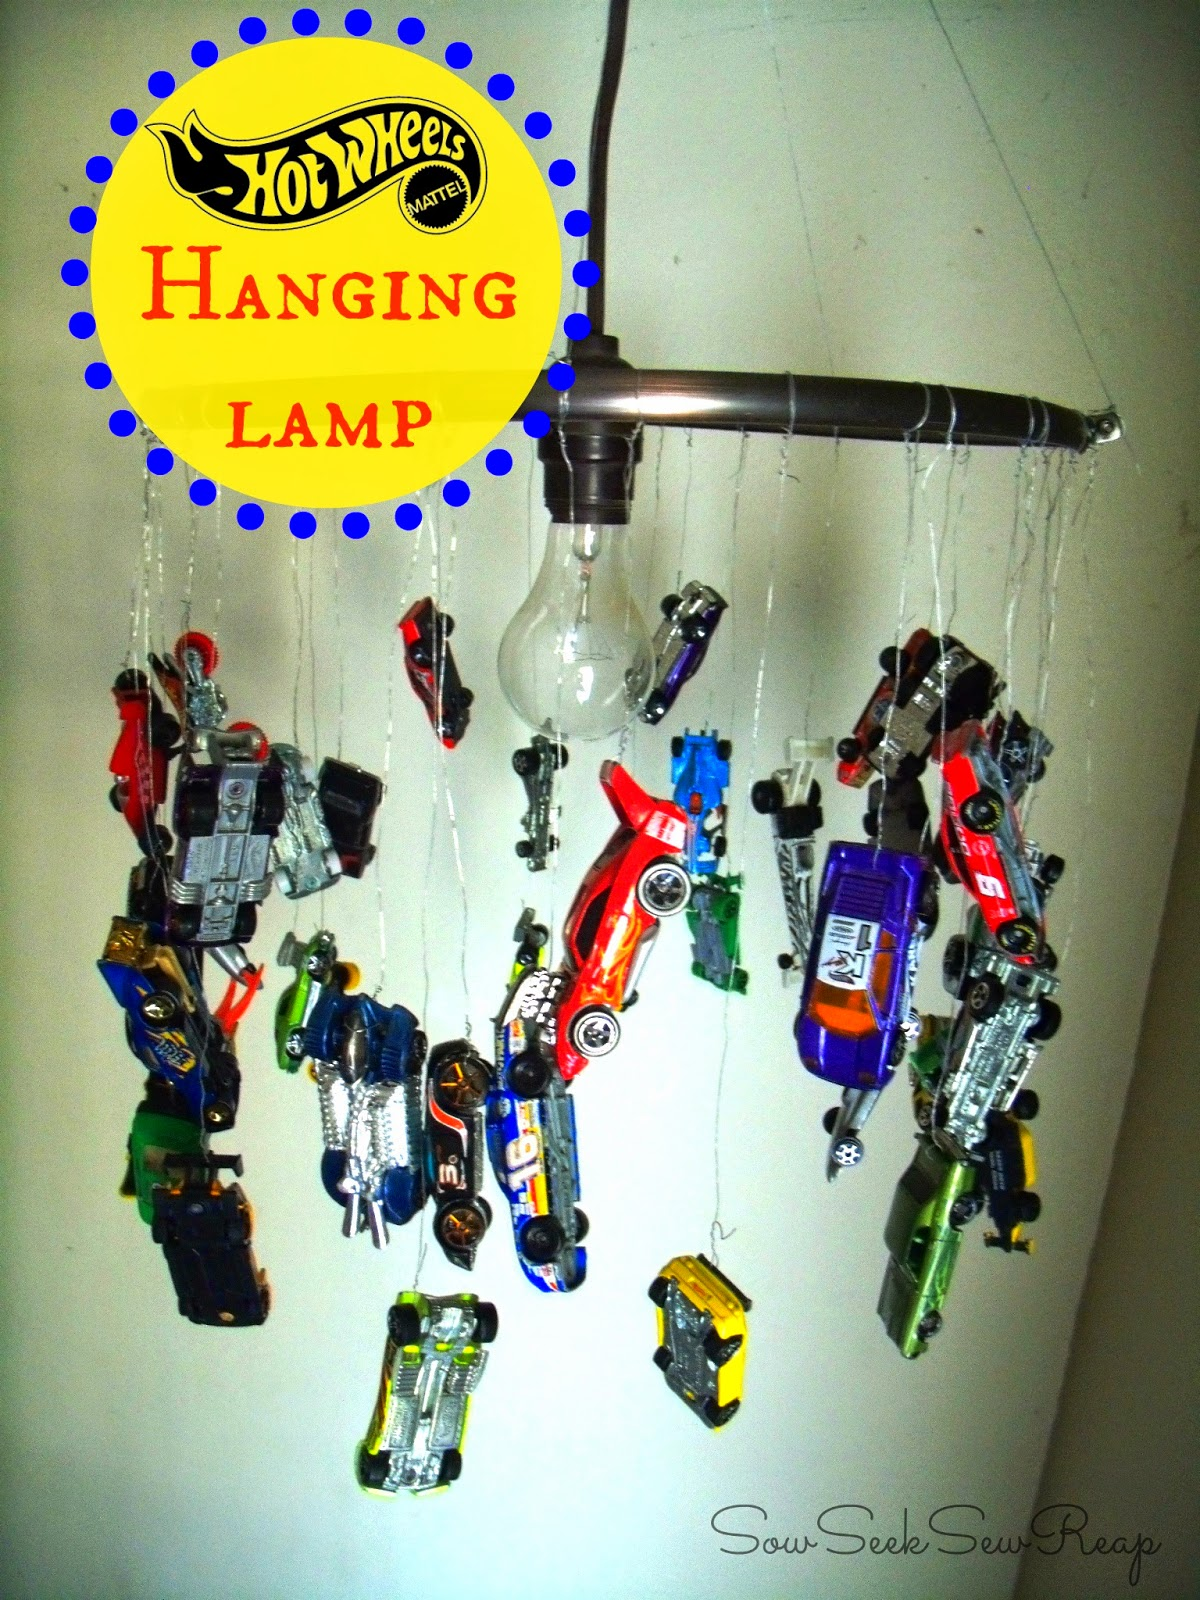 HOT WHEELS LAMP, DIY LAMP